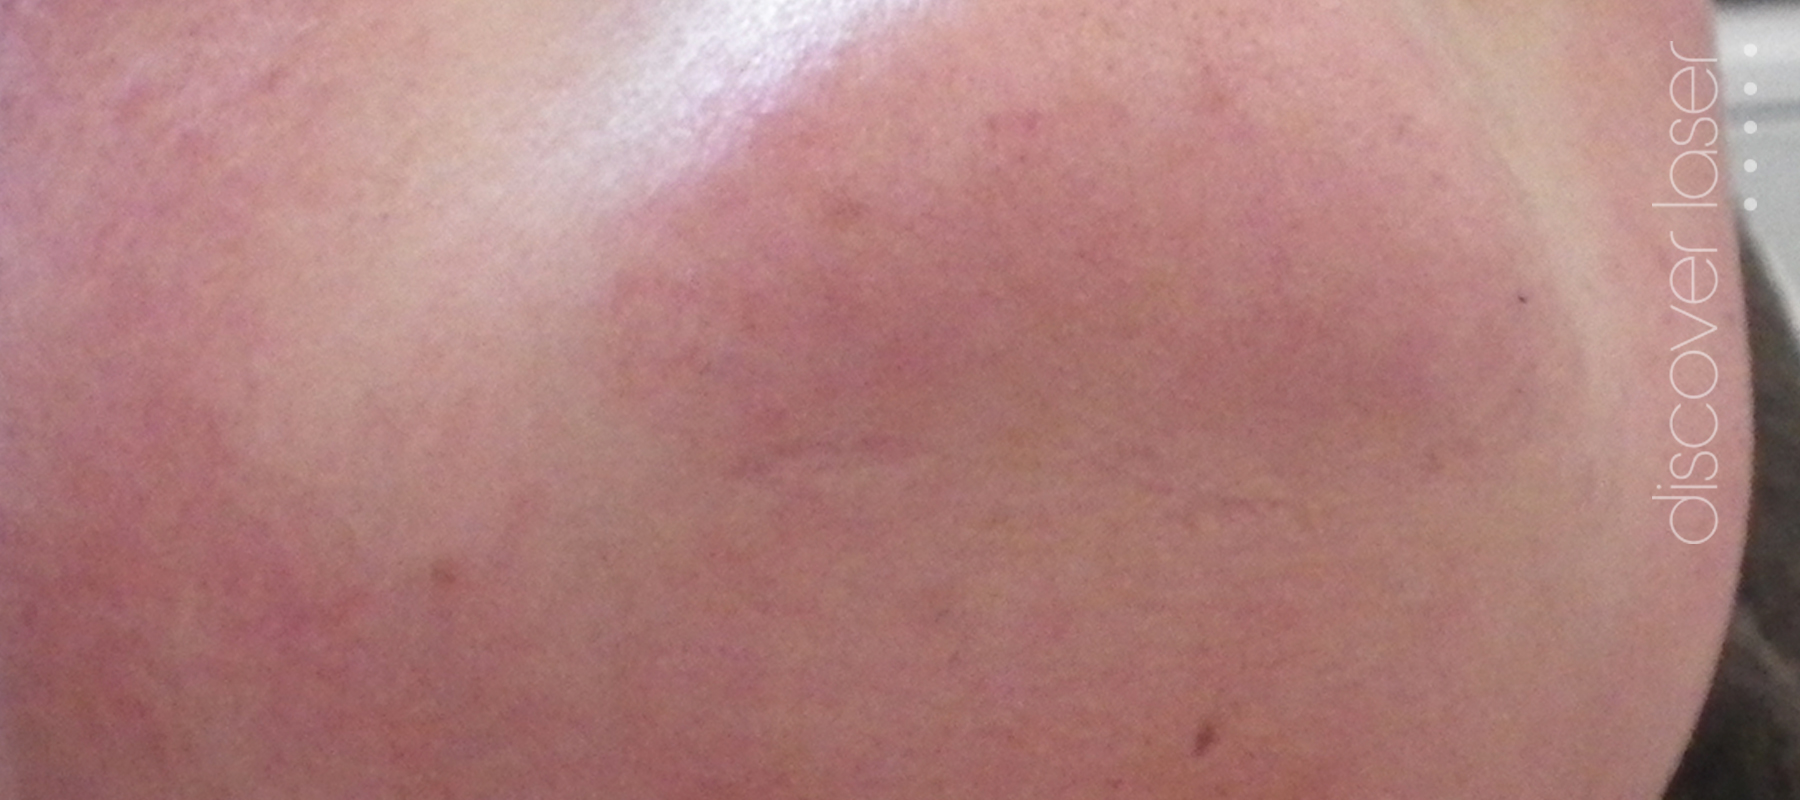 Laser hair removal chin after treatment